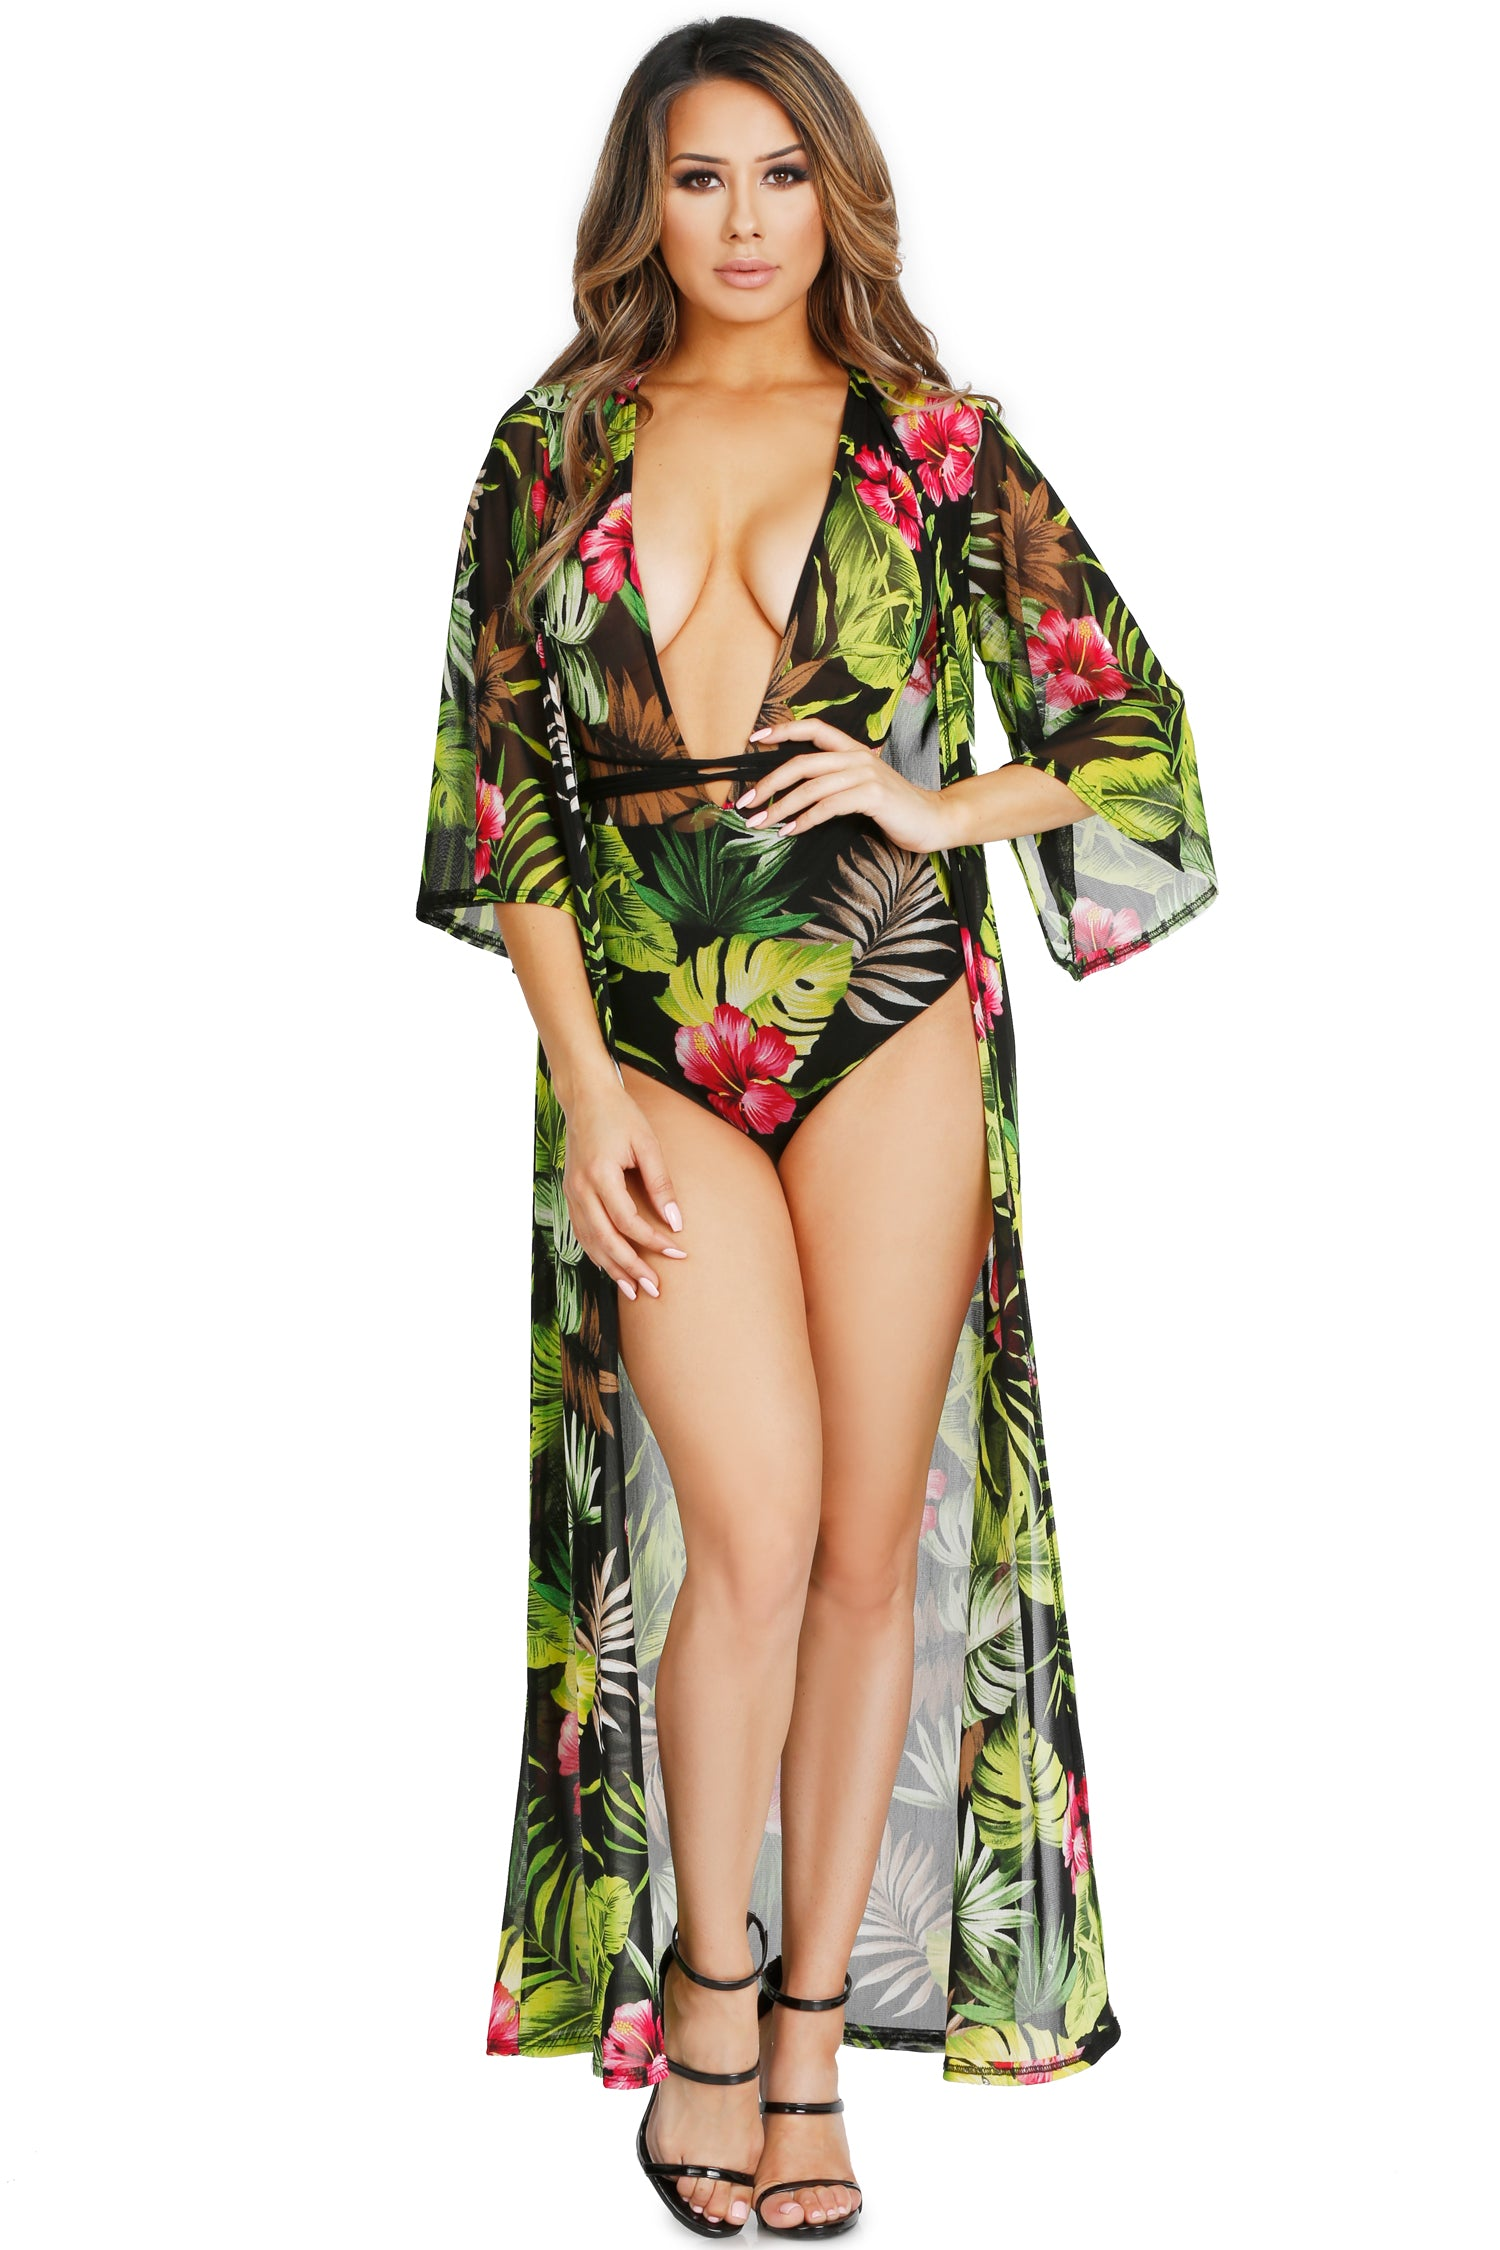 PARADISE BODYSUIT AND DUSTER SET (SOLD SEPARATELY)